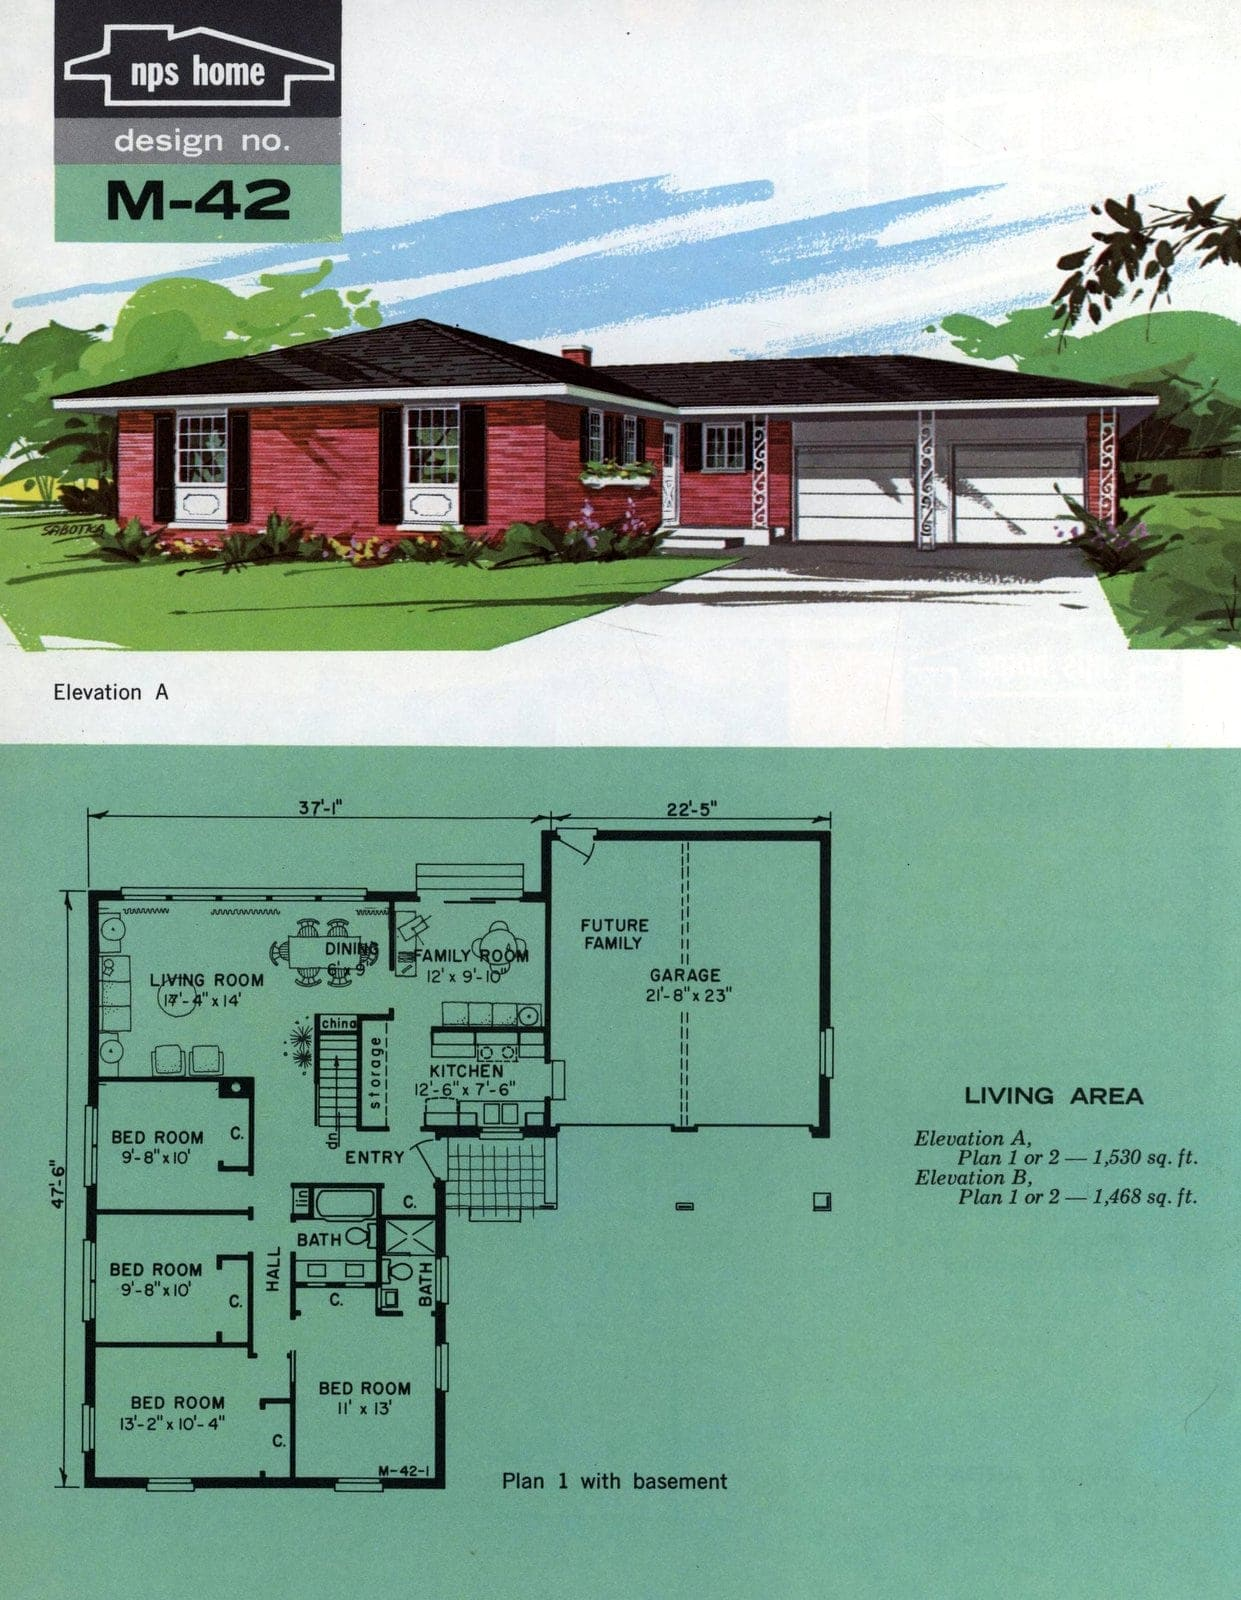 Vintage midcentury home plans from 1963 (11)